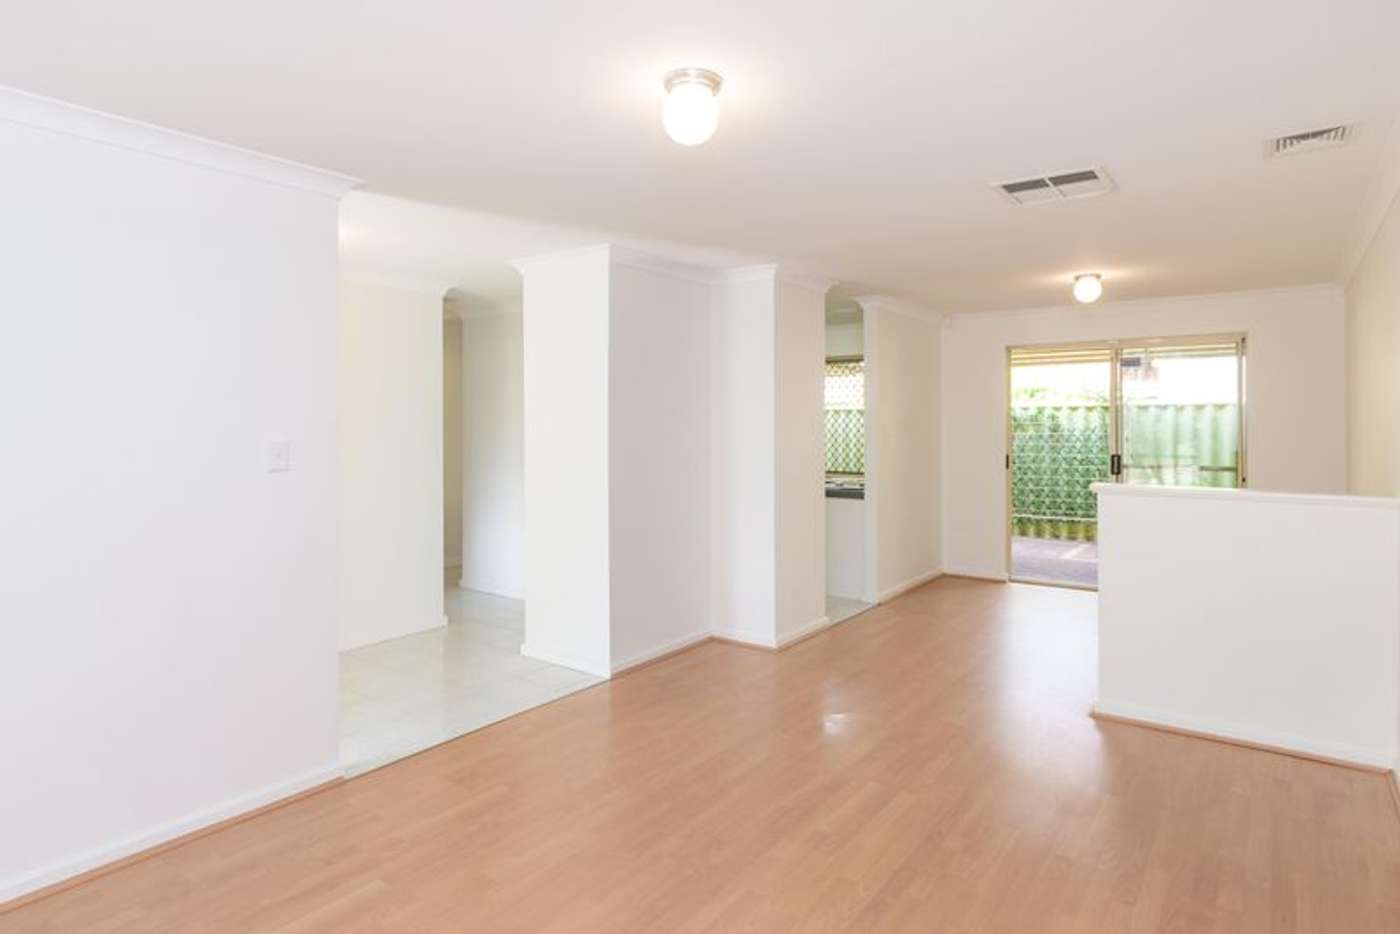 Fifth view of Homely house listing, 220 Roberts Street, Joondanna WA 6060